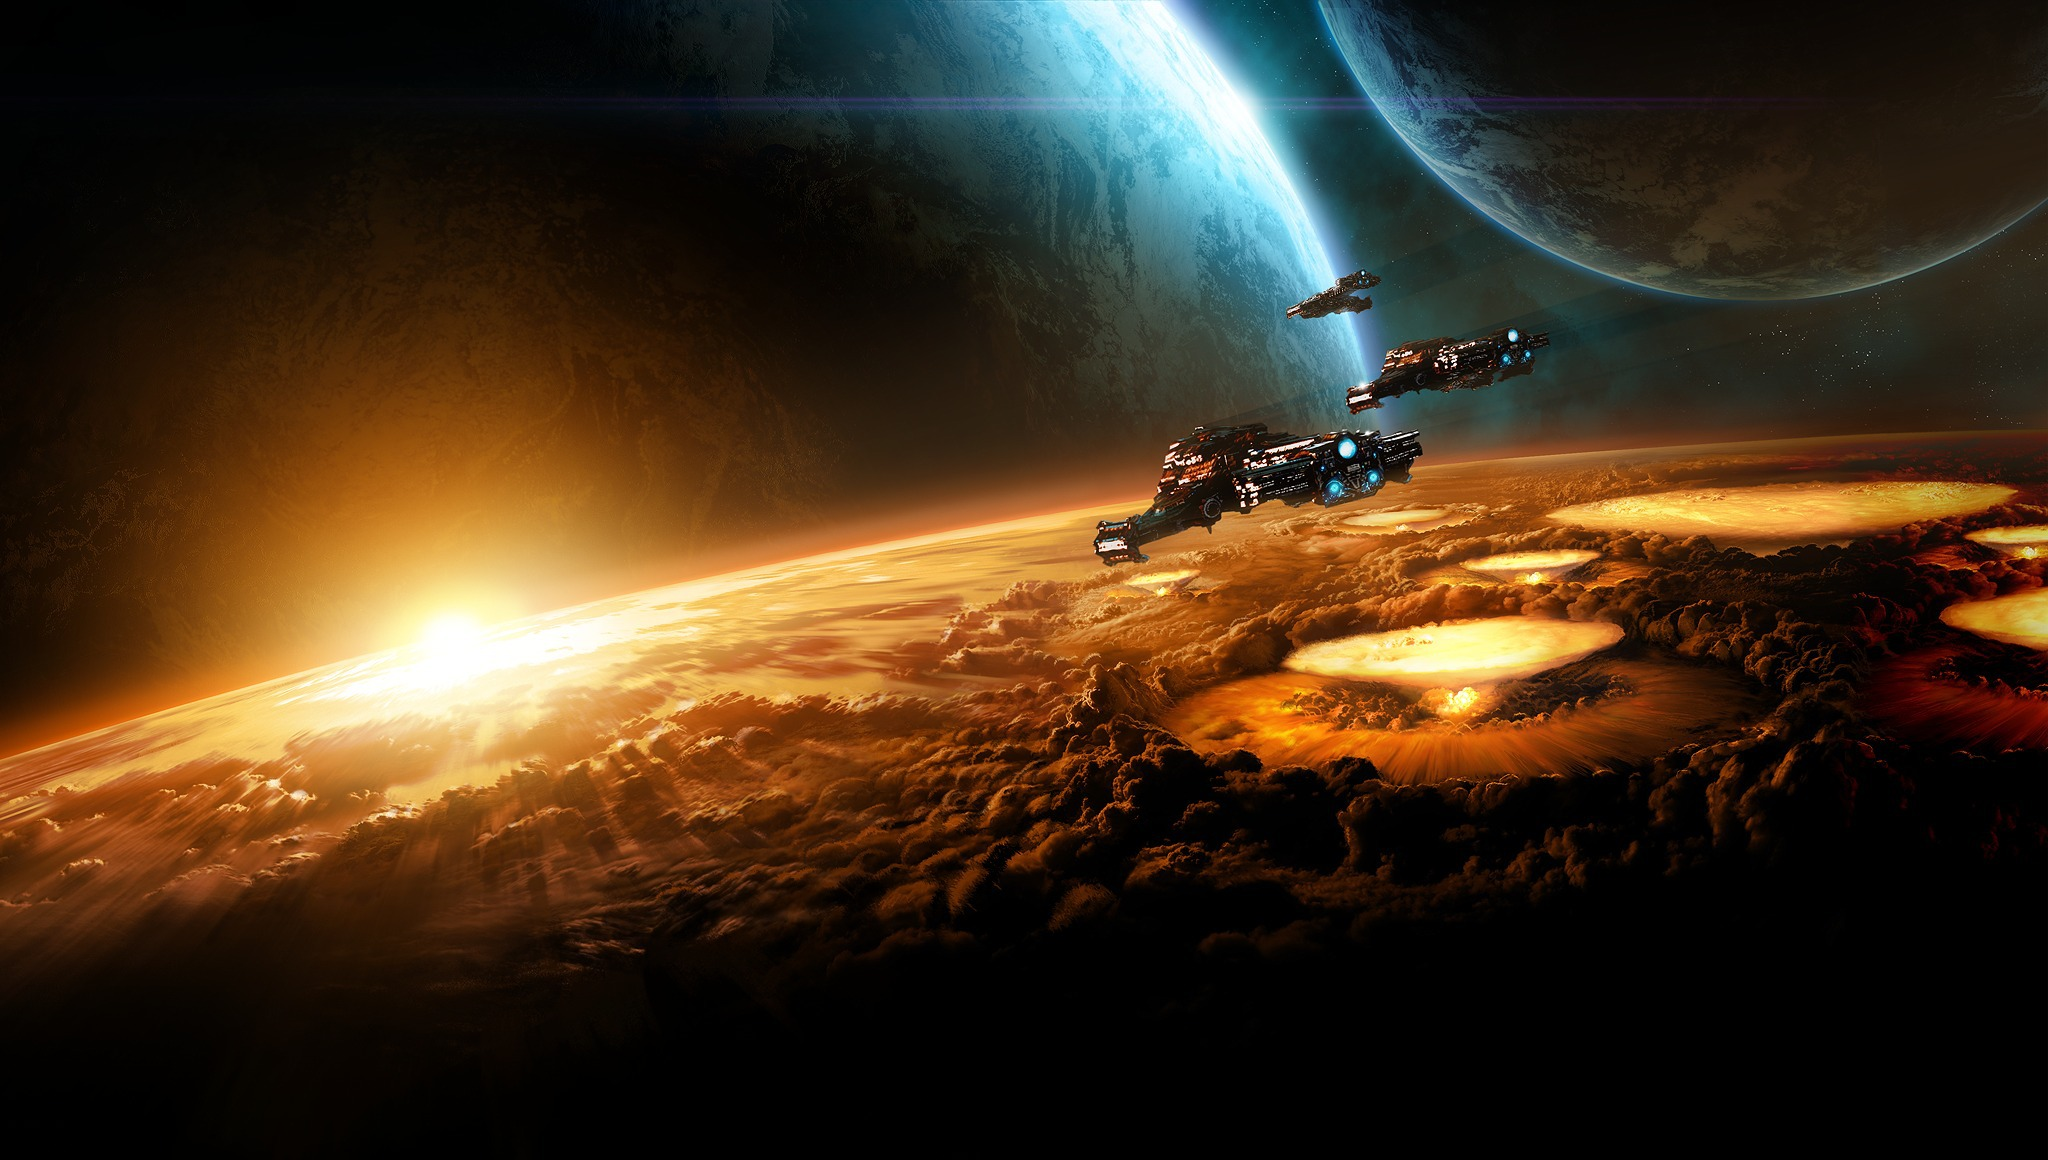 Somewhere in Space SC2 related[2048x1160] wallpapers 2048x1160